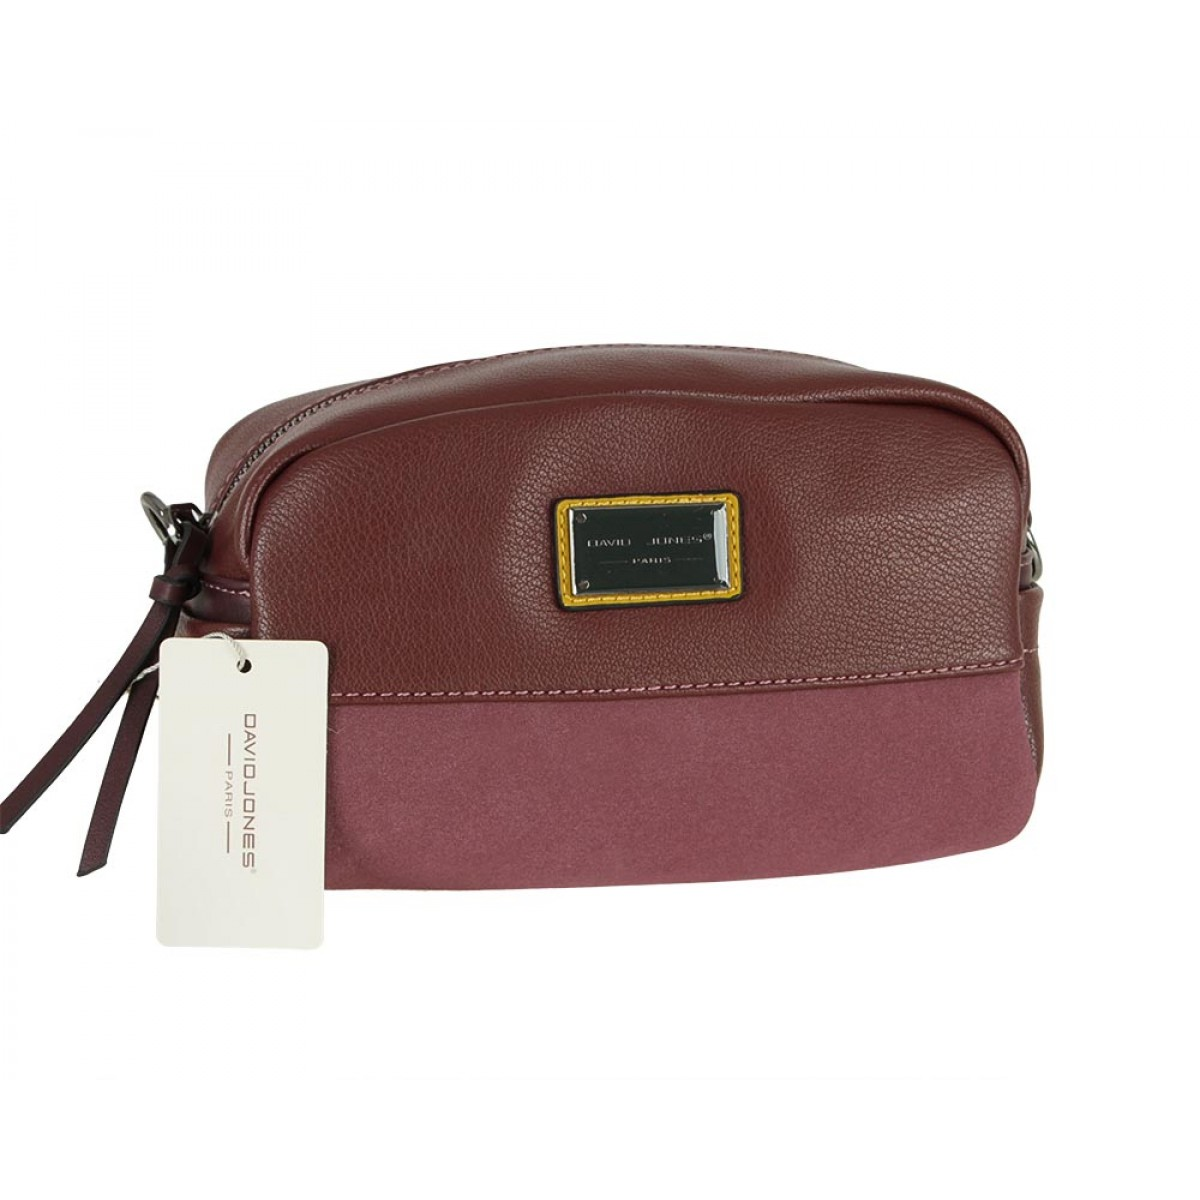 Жіноча сумка David Jones 6121-1 DARK BORDEAUX